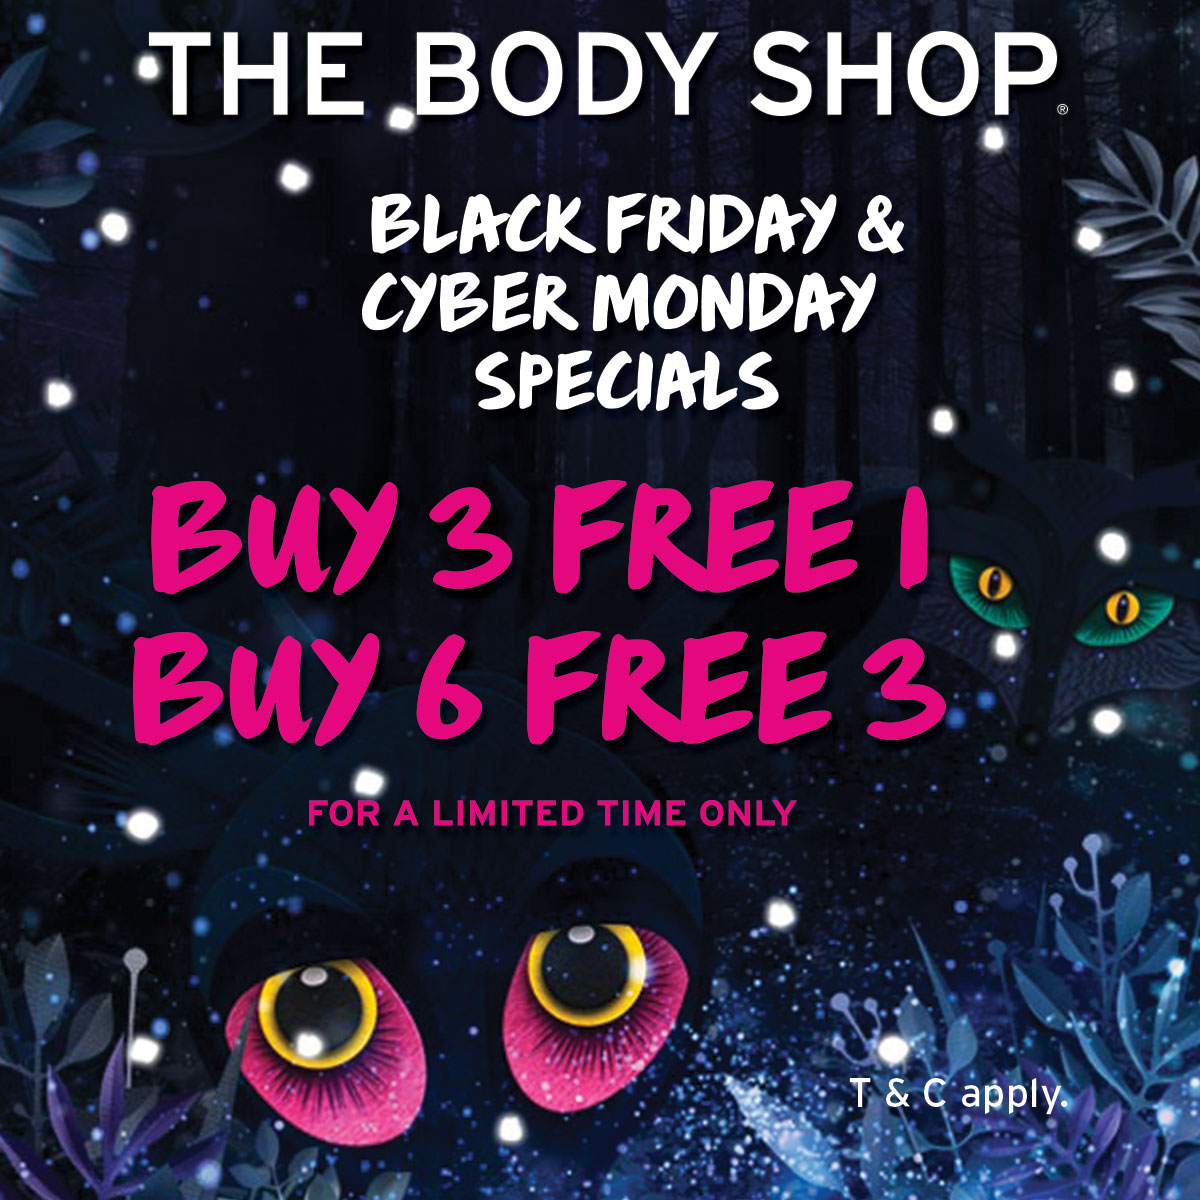 The Body Shop Black Friday Cyber Monday Sale